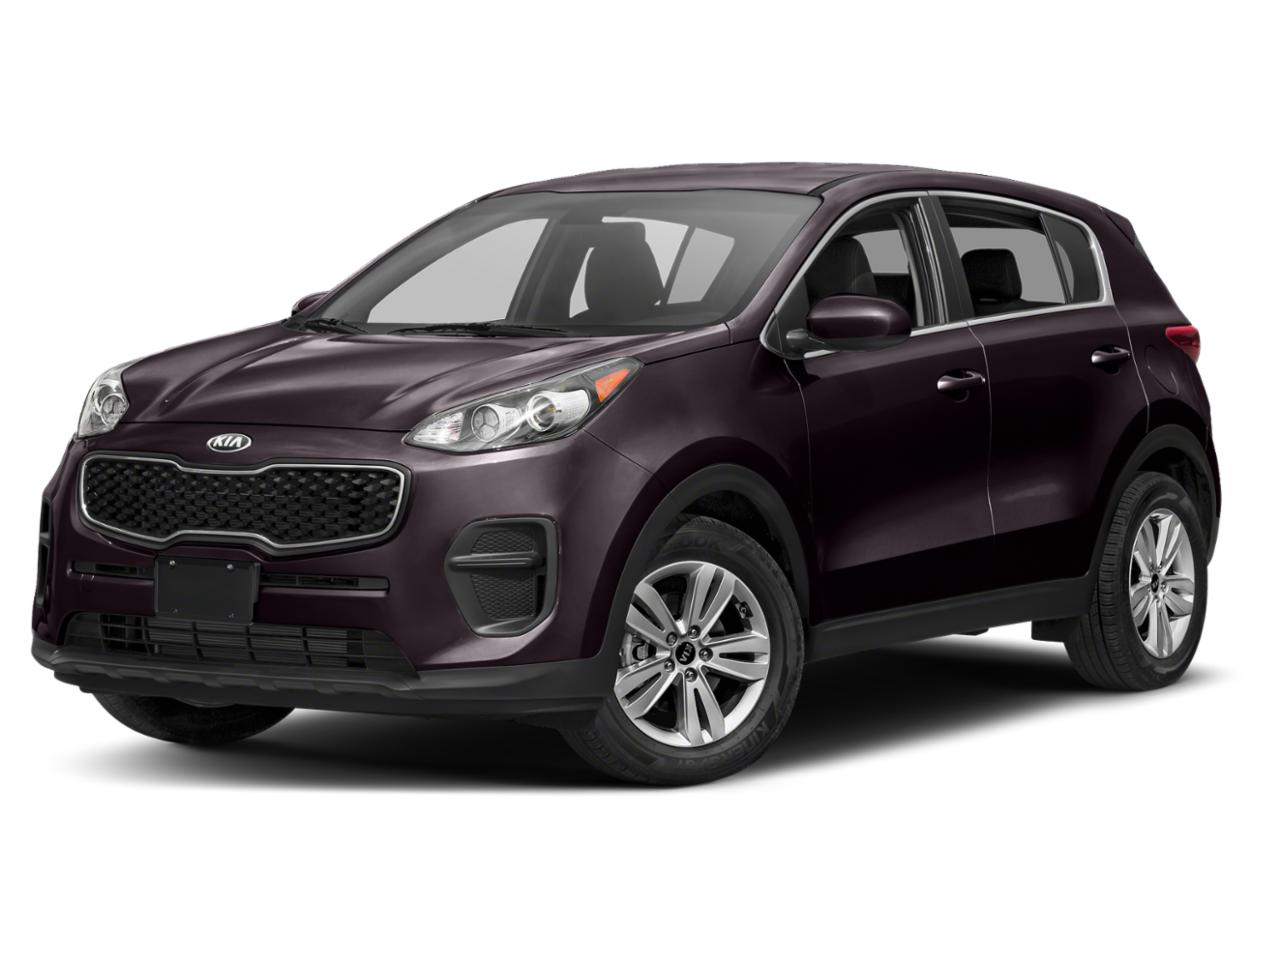 2018 Kia Sportage Vehicle Photo in Tucson, AZ 85712